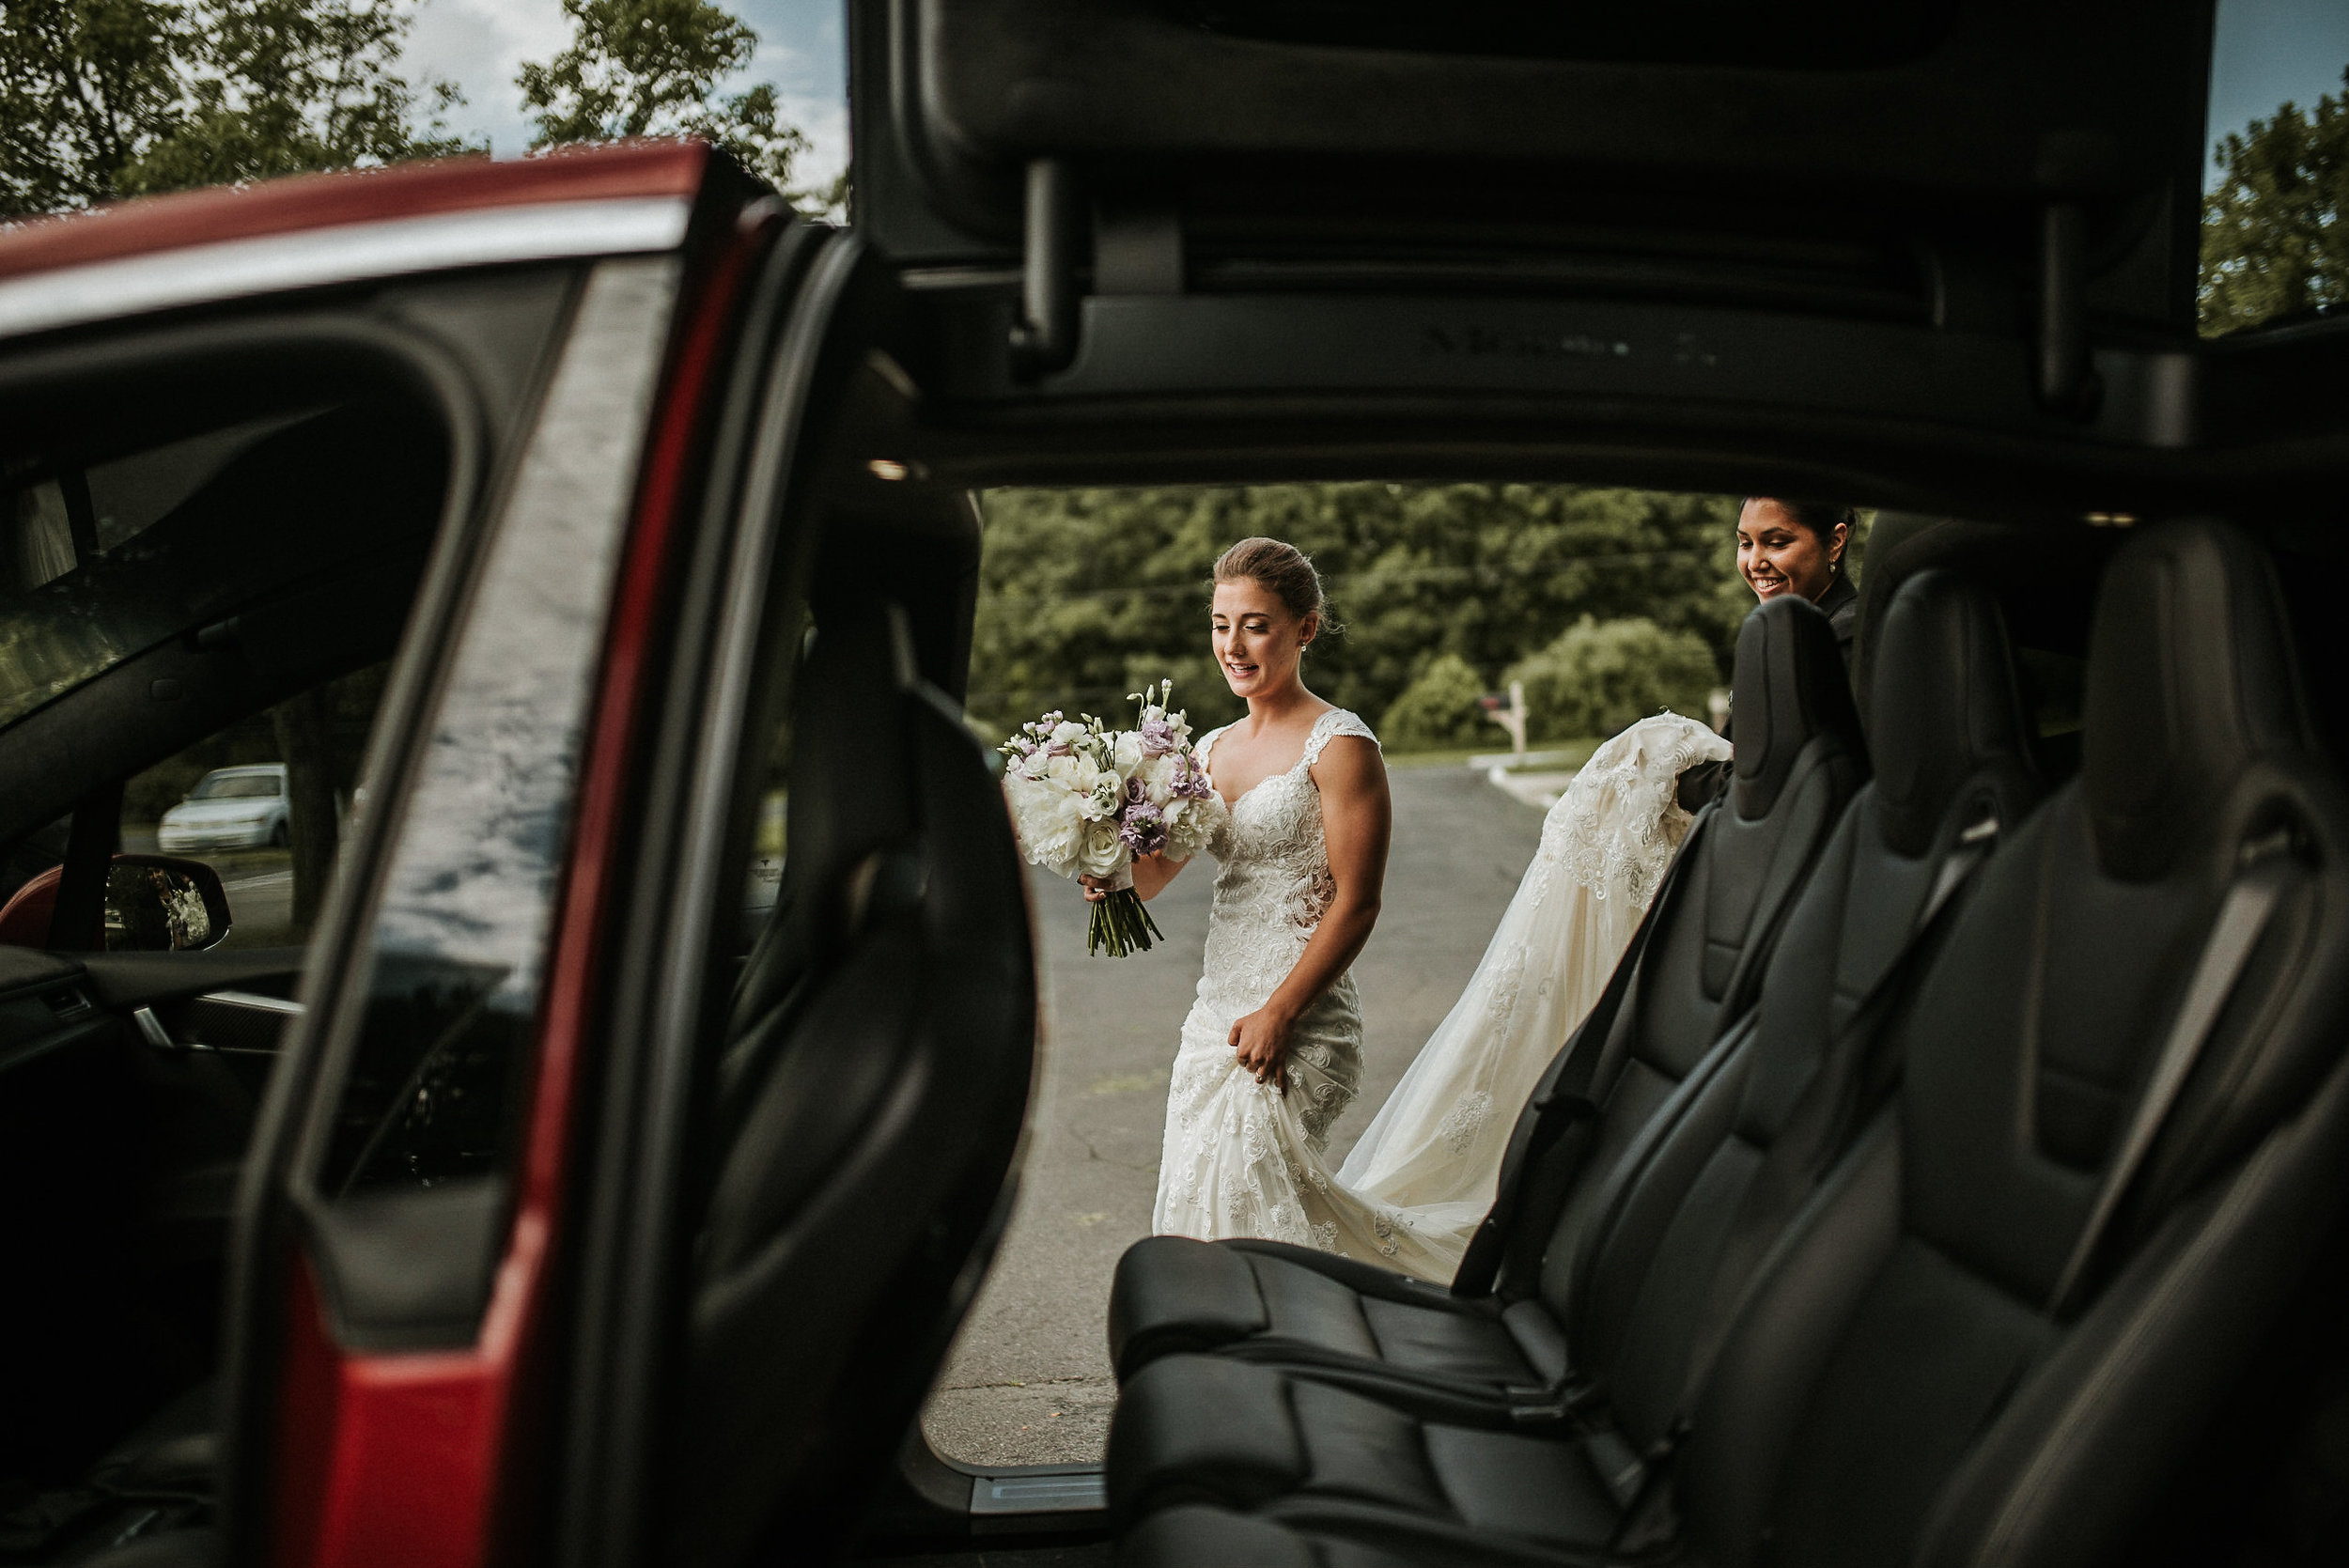 Bride and groom getting into Tesla